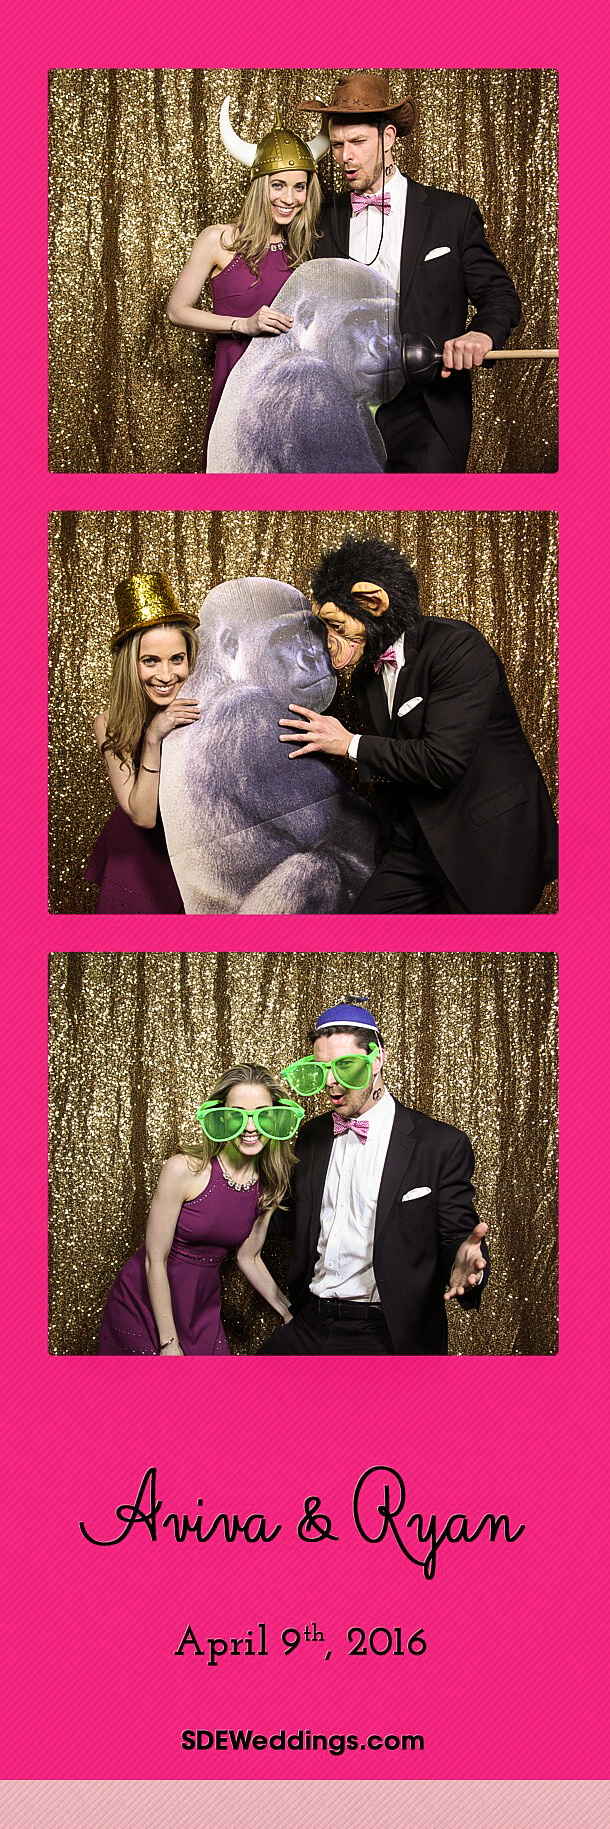 Art Gallery of Ontario AGO Wedding Photo Booth Rental 5